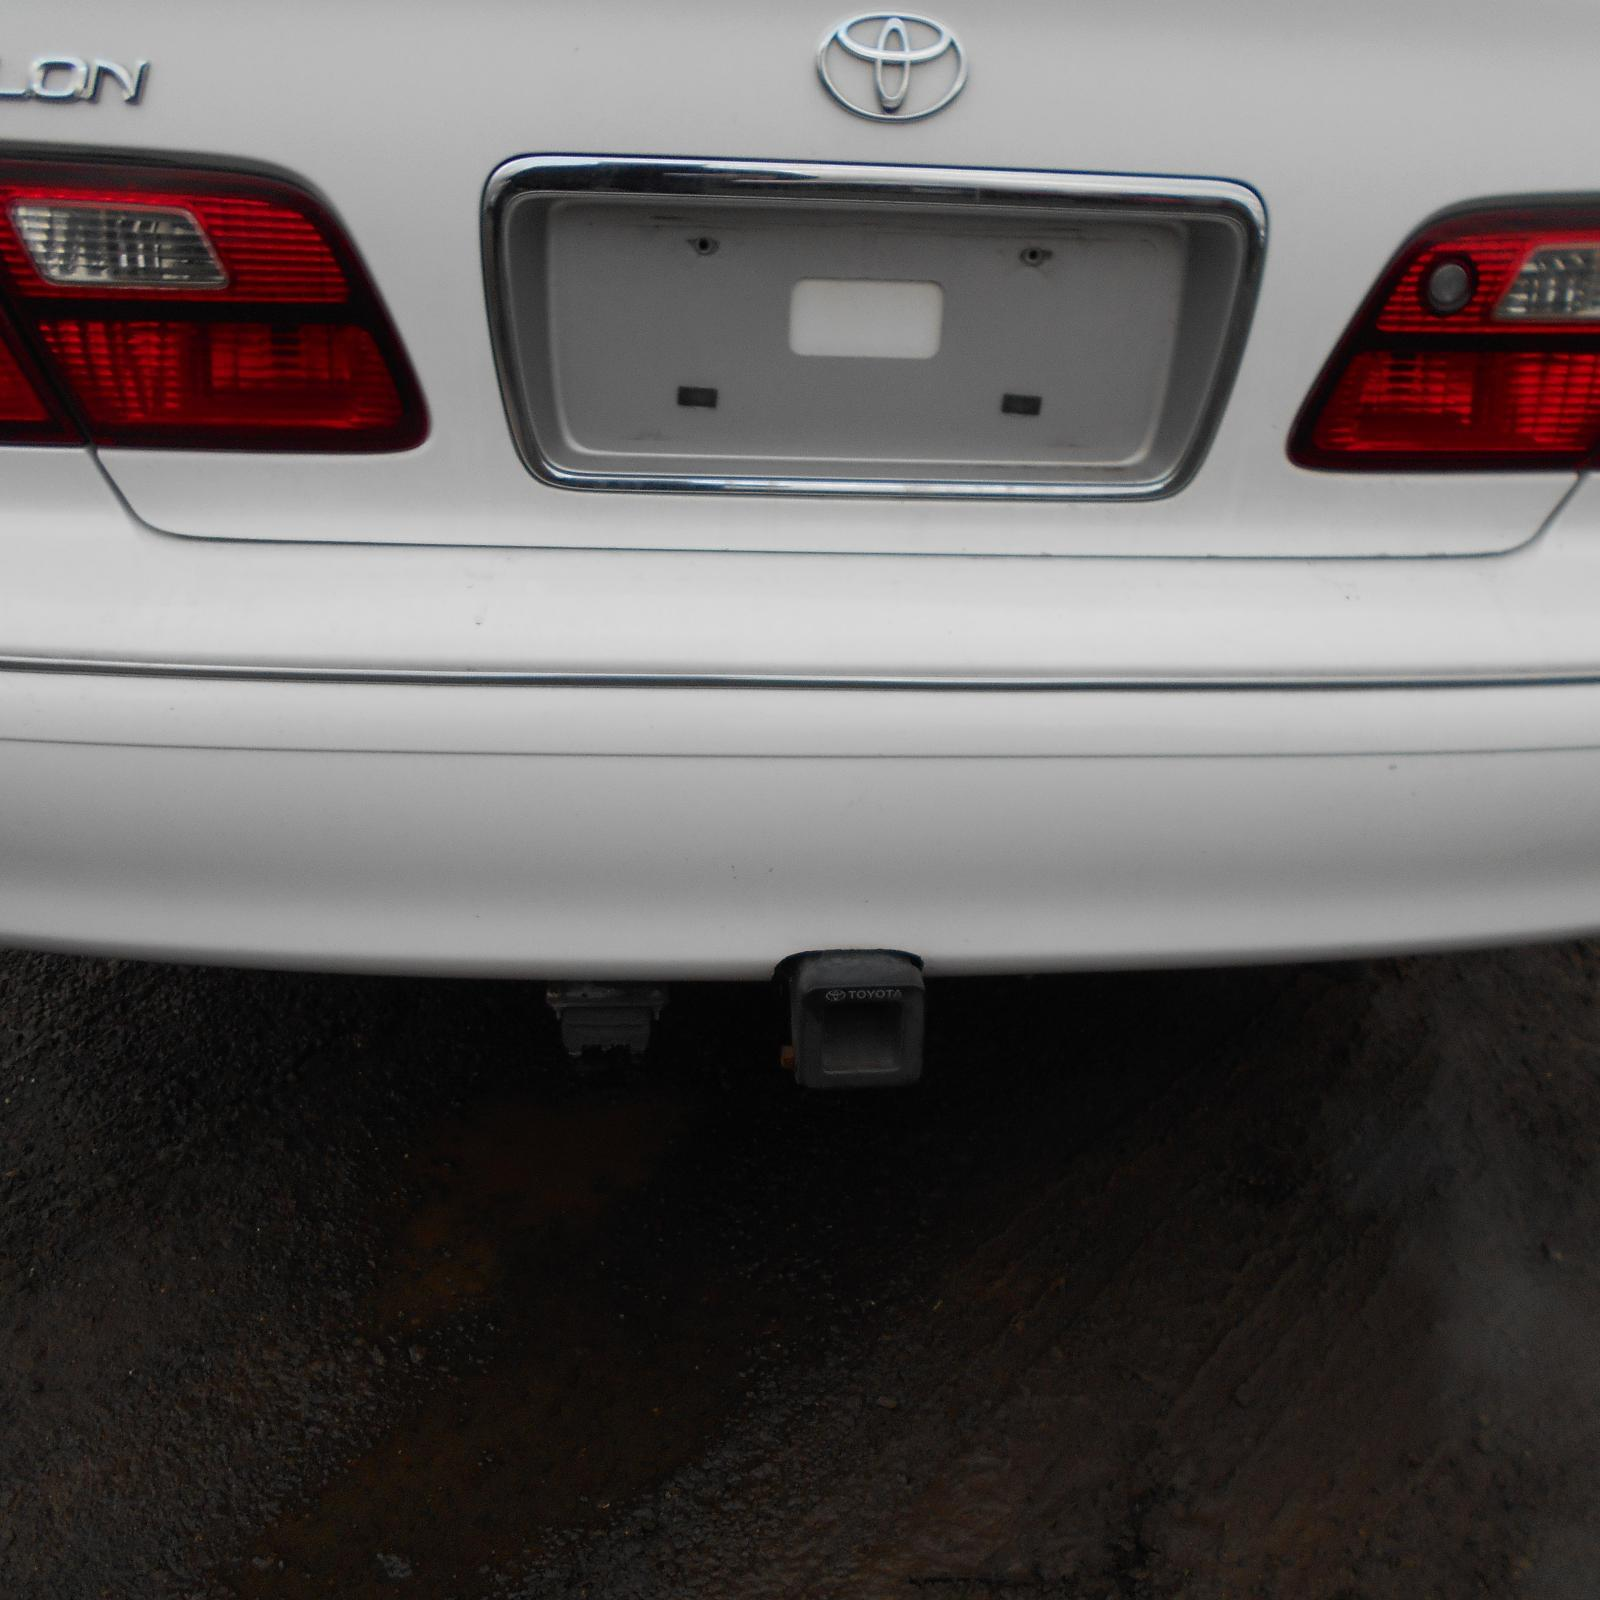 TOYOTA AVALON, Rear Bumper, MCX10R, 07/00-09/03